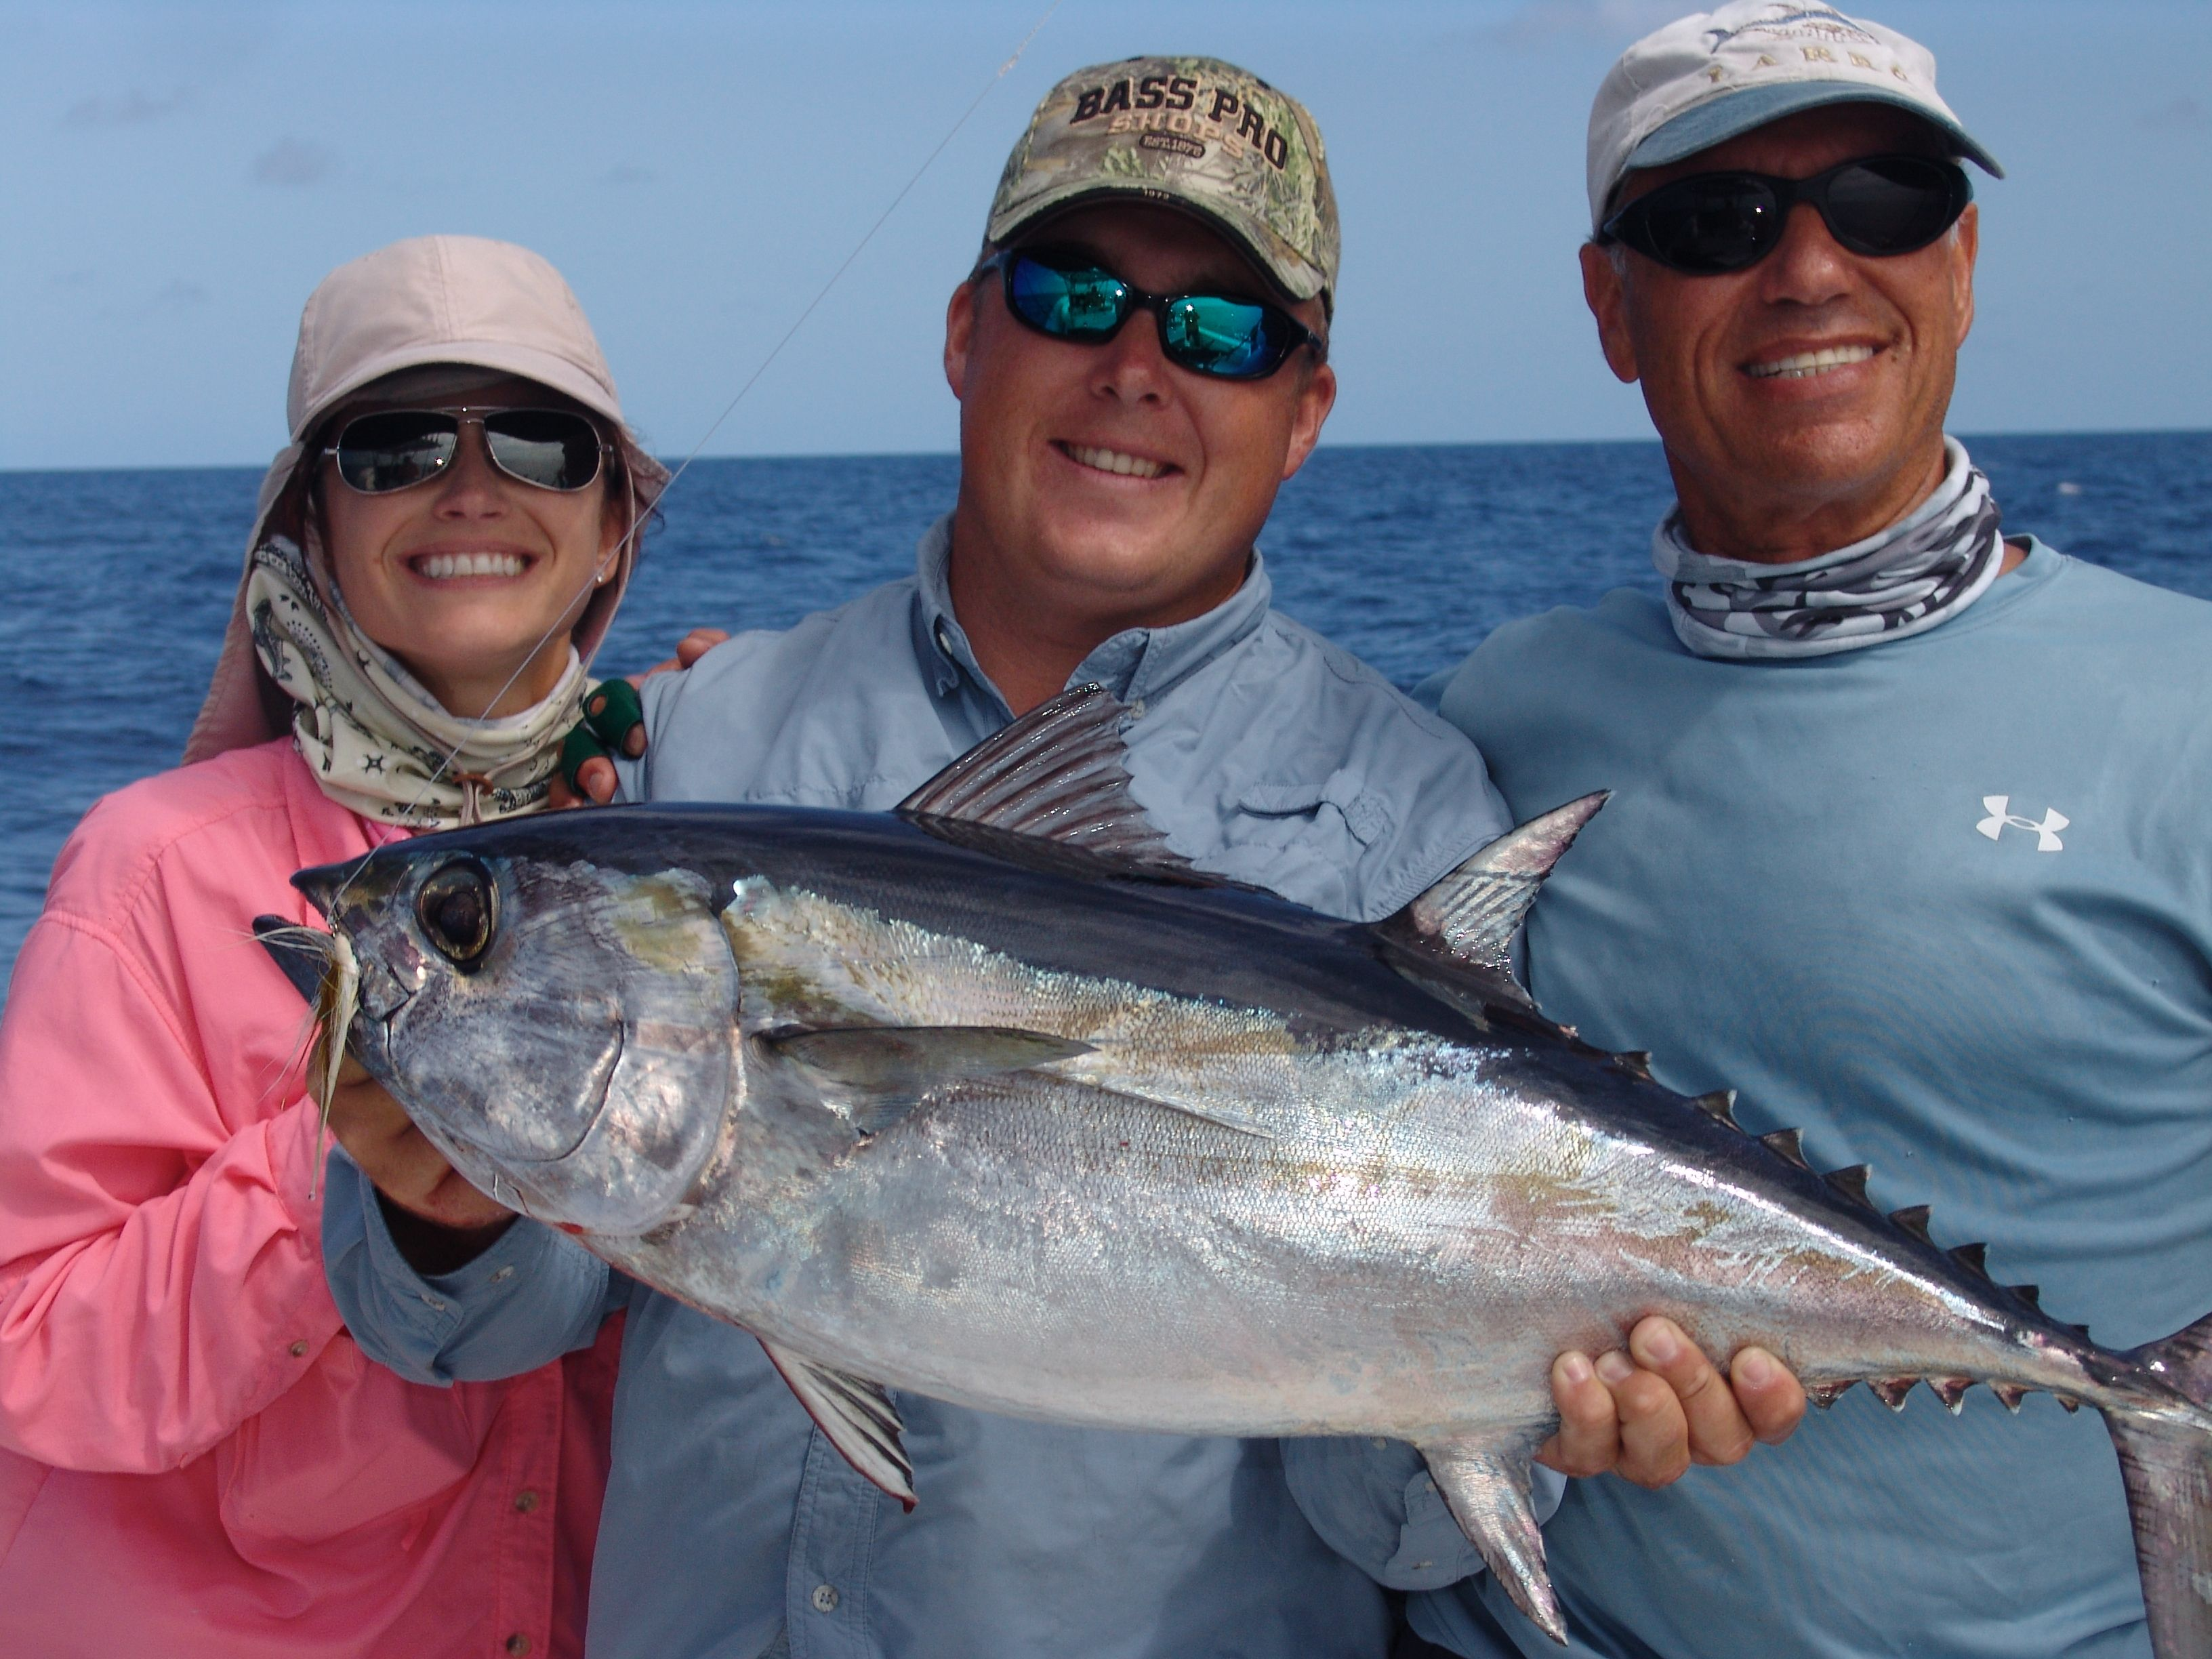 Fly Fishing In Key West Florida With Delph Fishing Charters Fly Fishing Girls Fly Fishing Fishing Photography